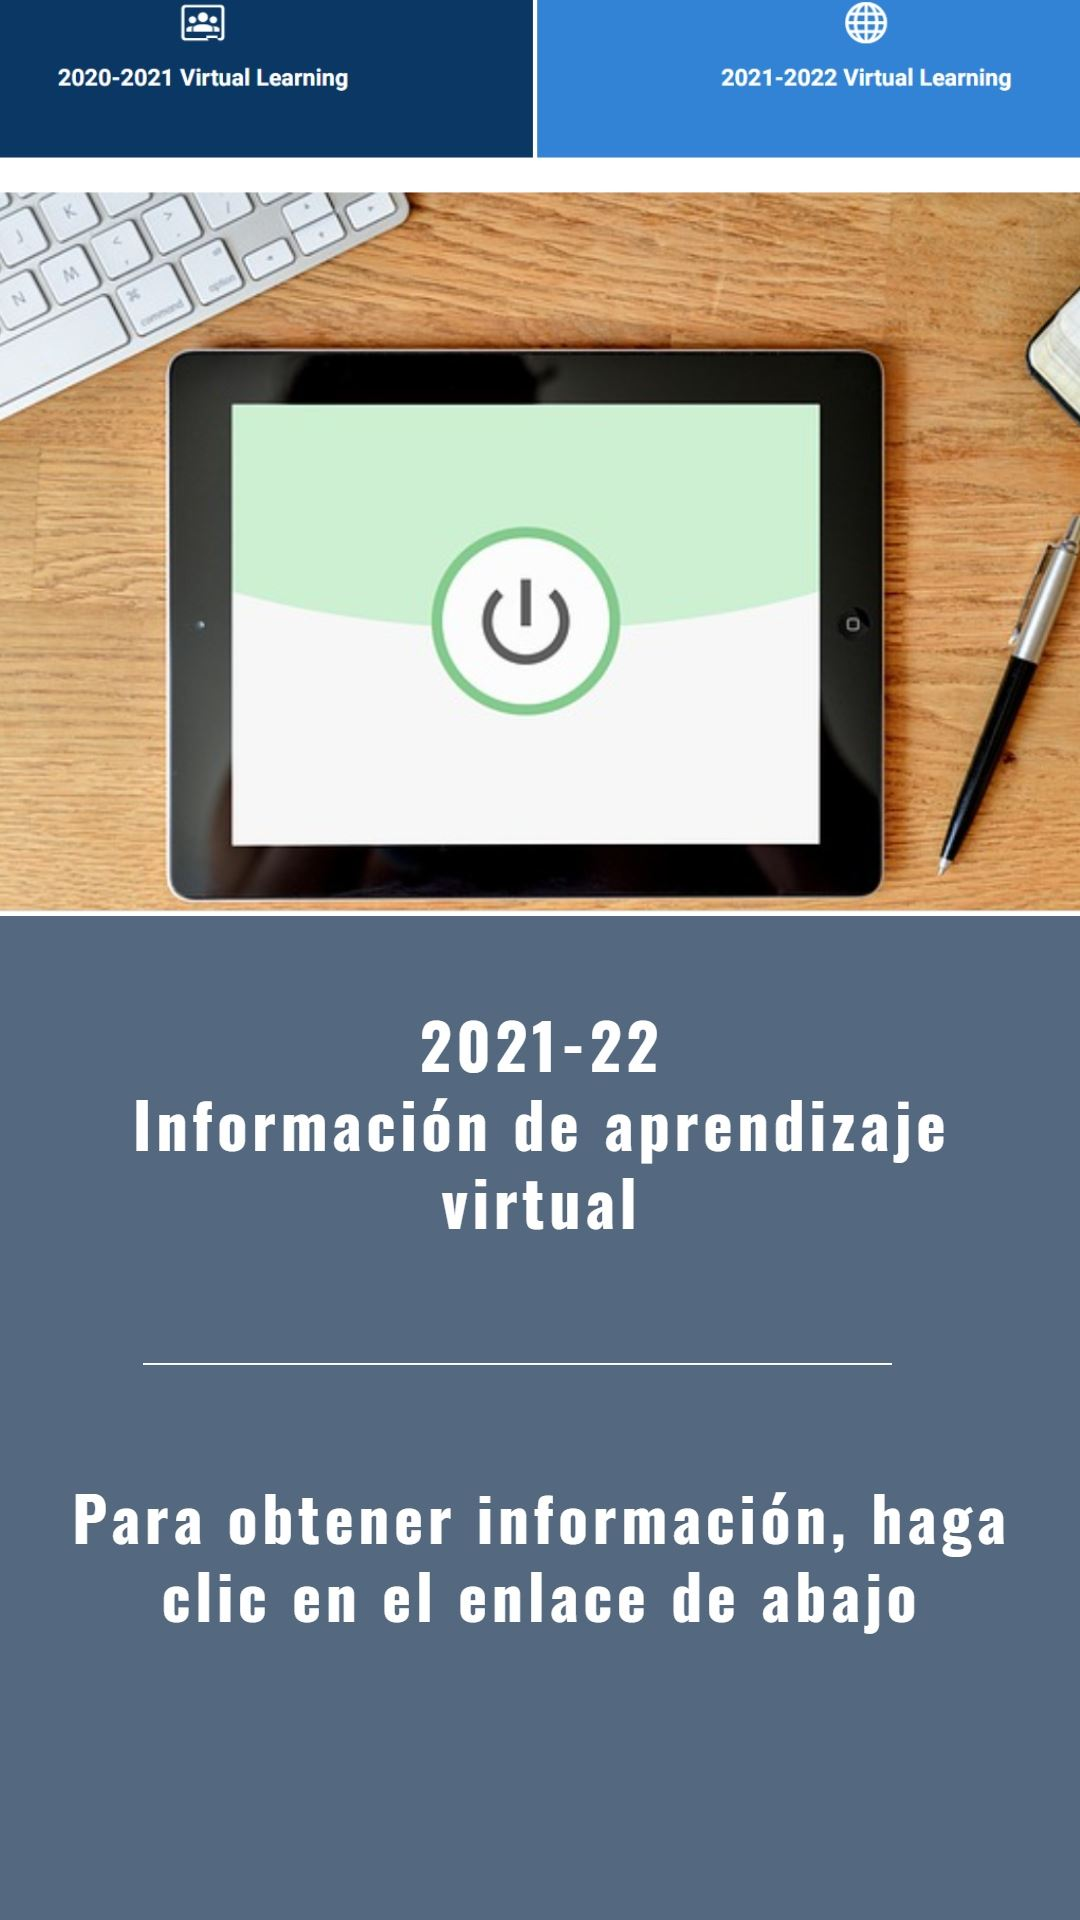 Spanish information on Virtual Learning